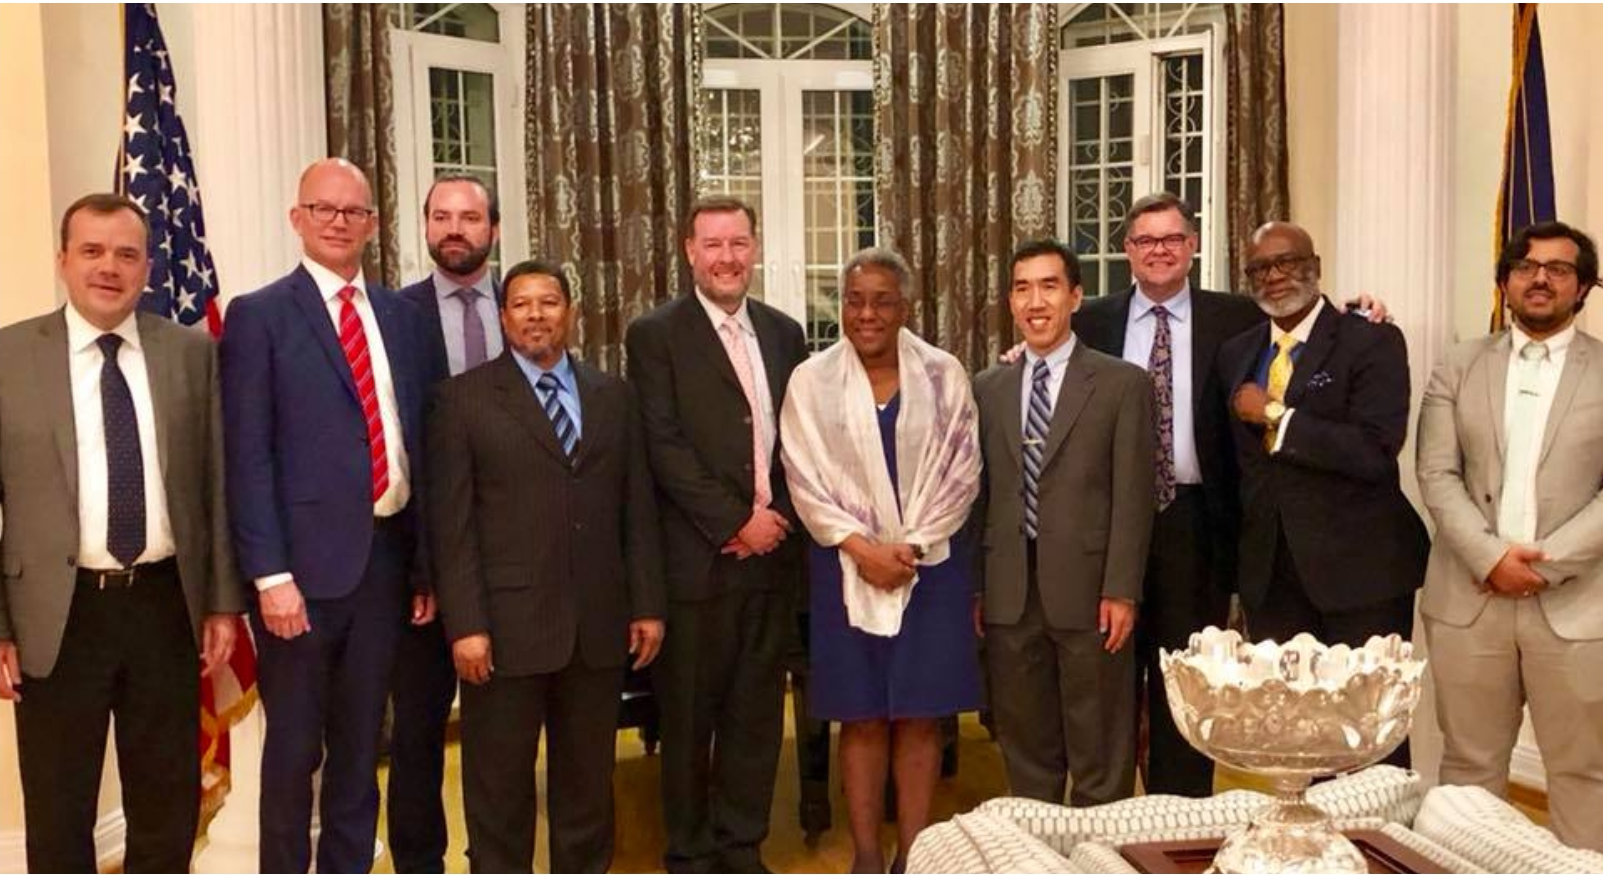 Members of the IGE Delegation and U.S. Ambassador to Uzbekistan Pamela Spratlen